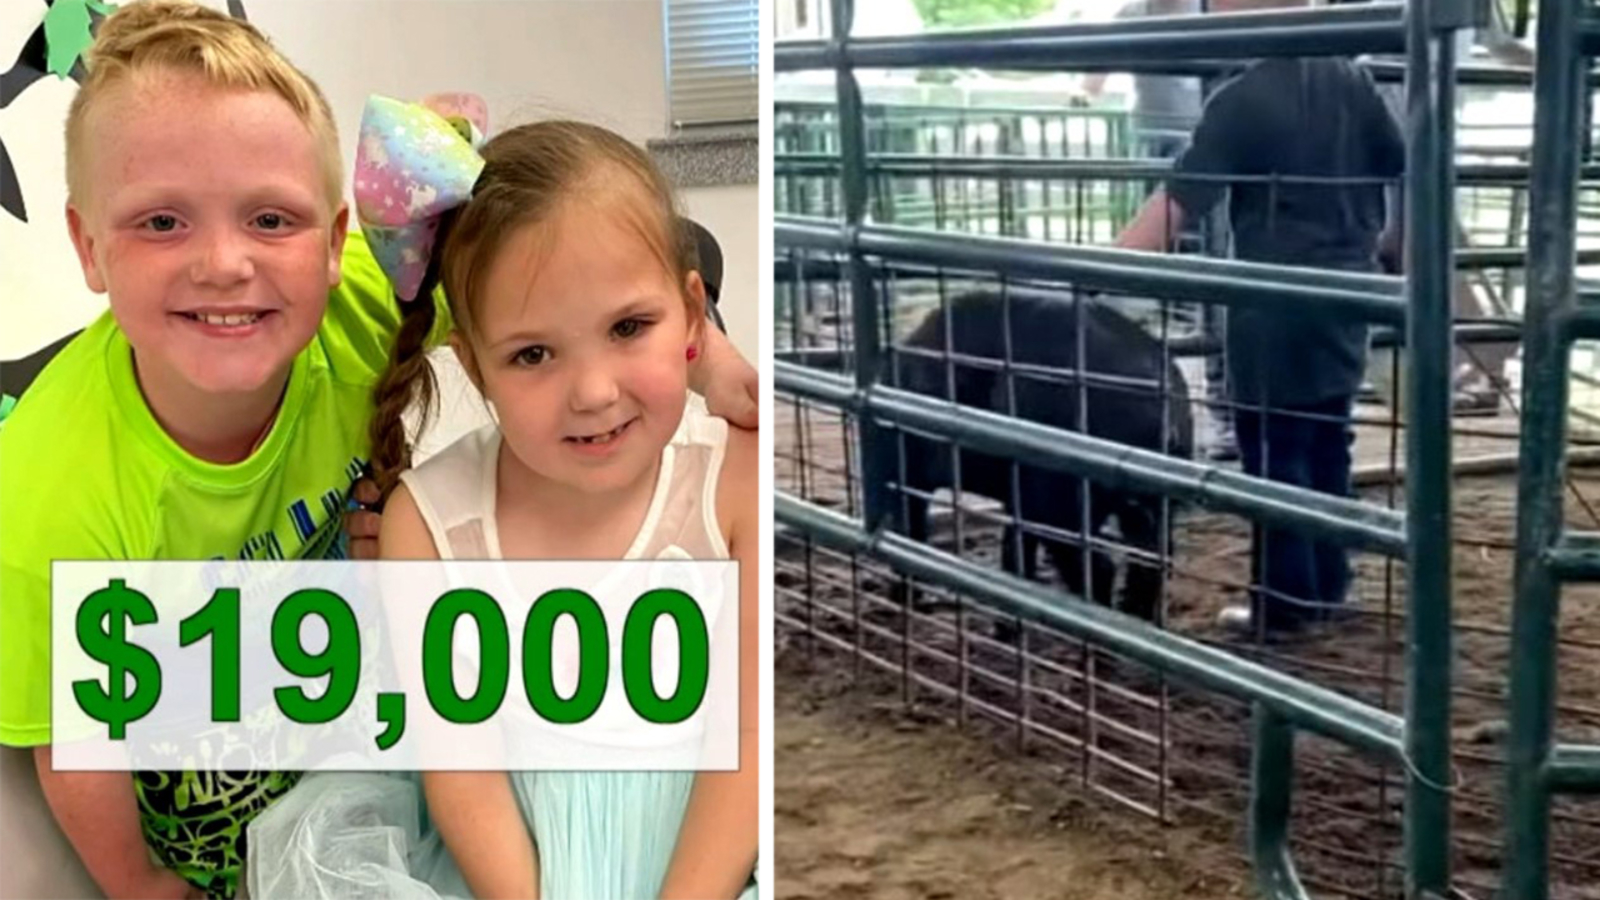 Split screen with a pair of children and a hog in a cage